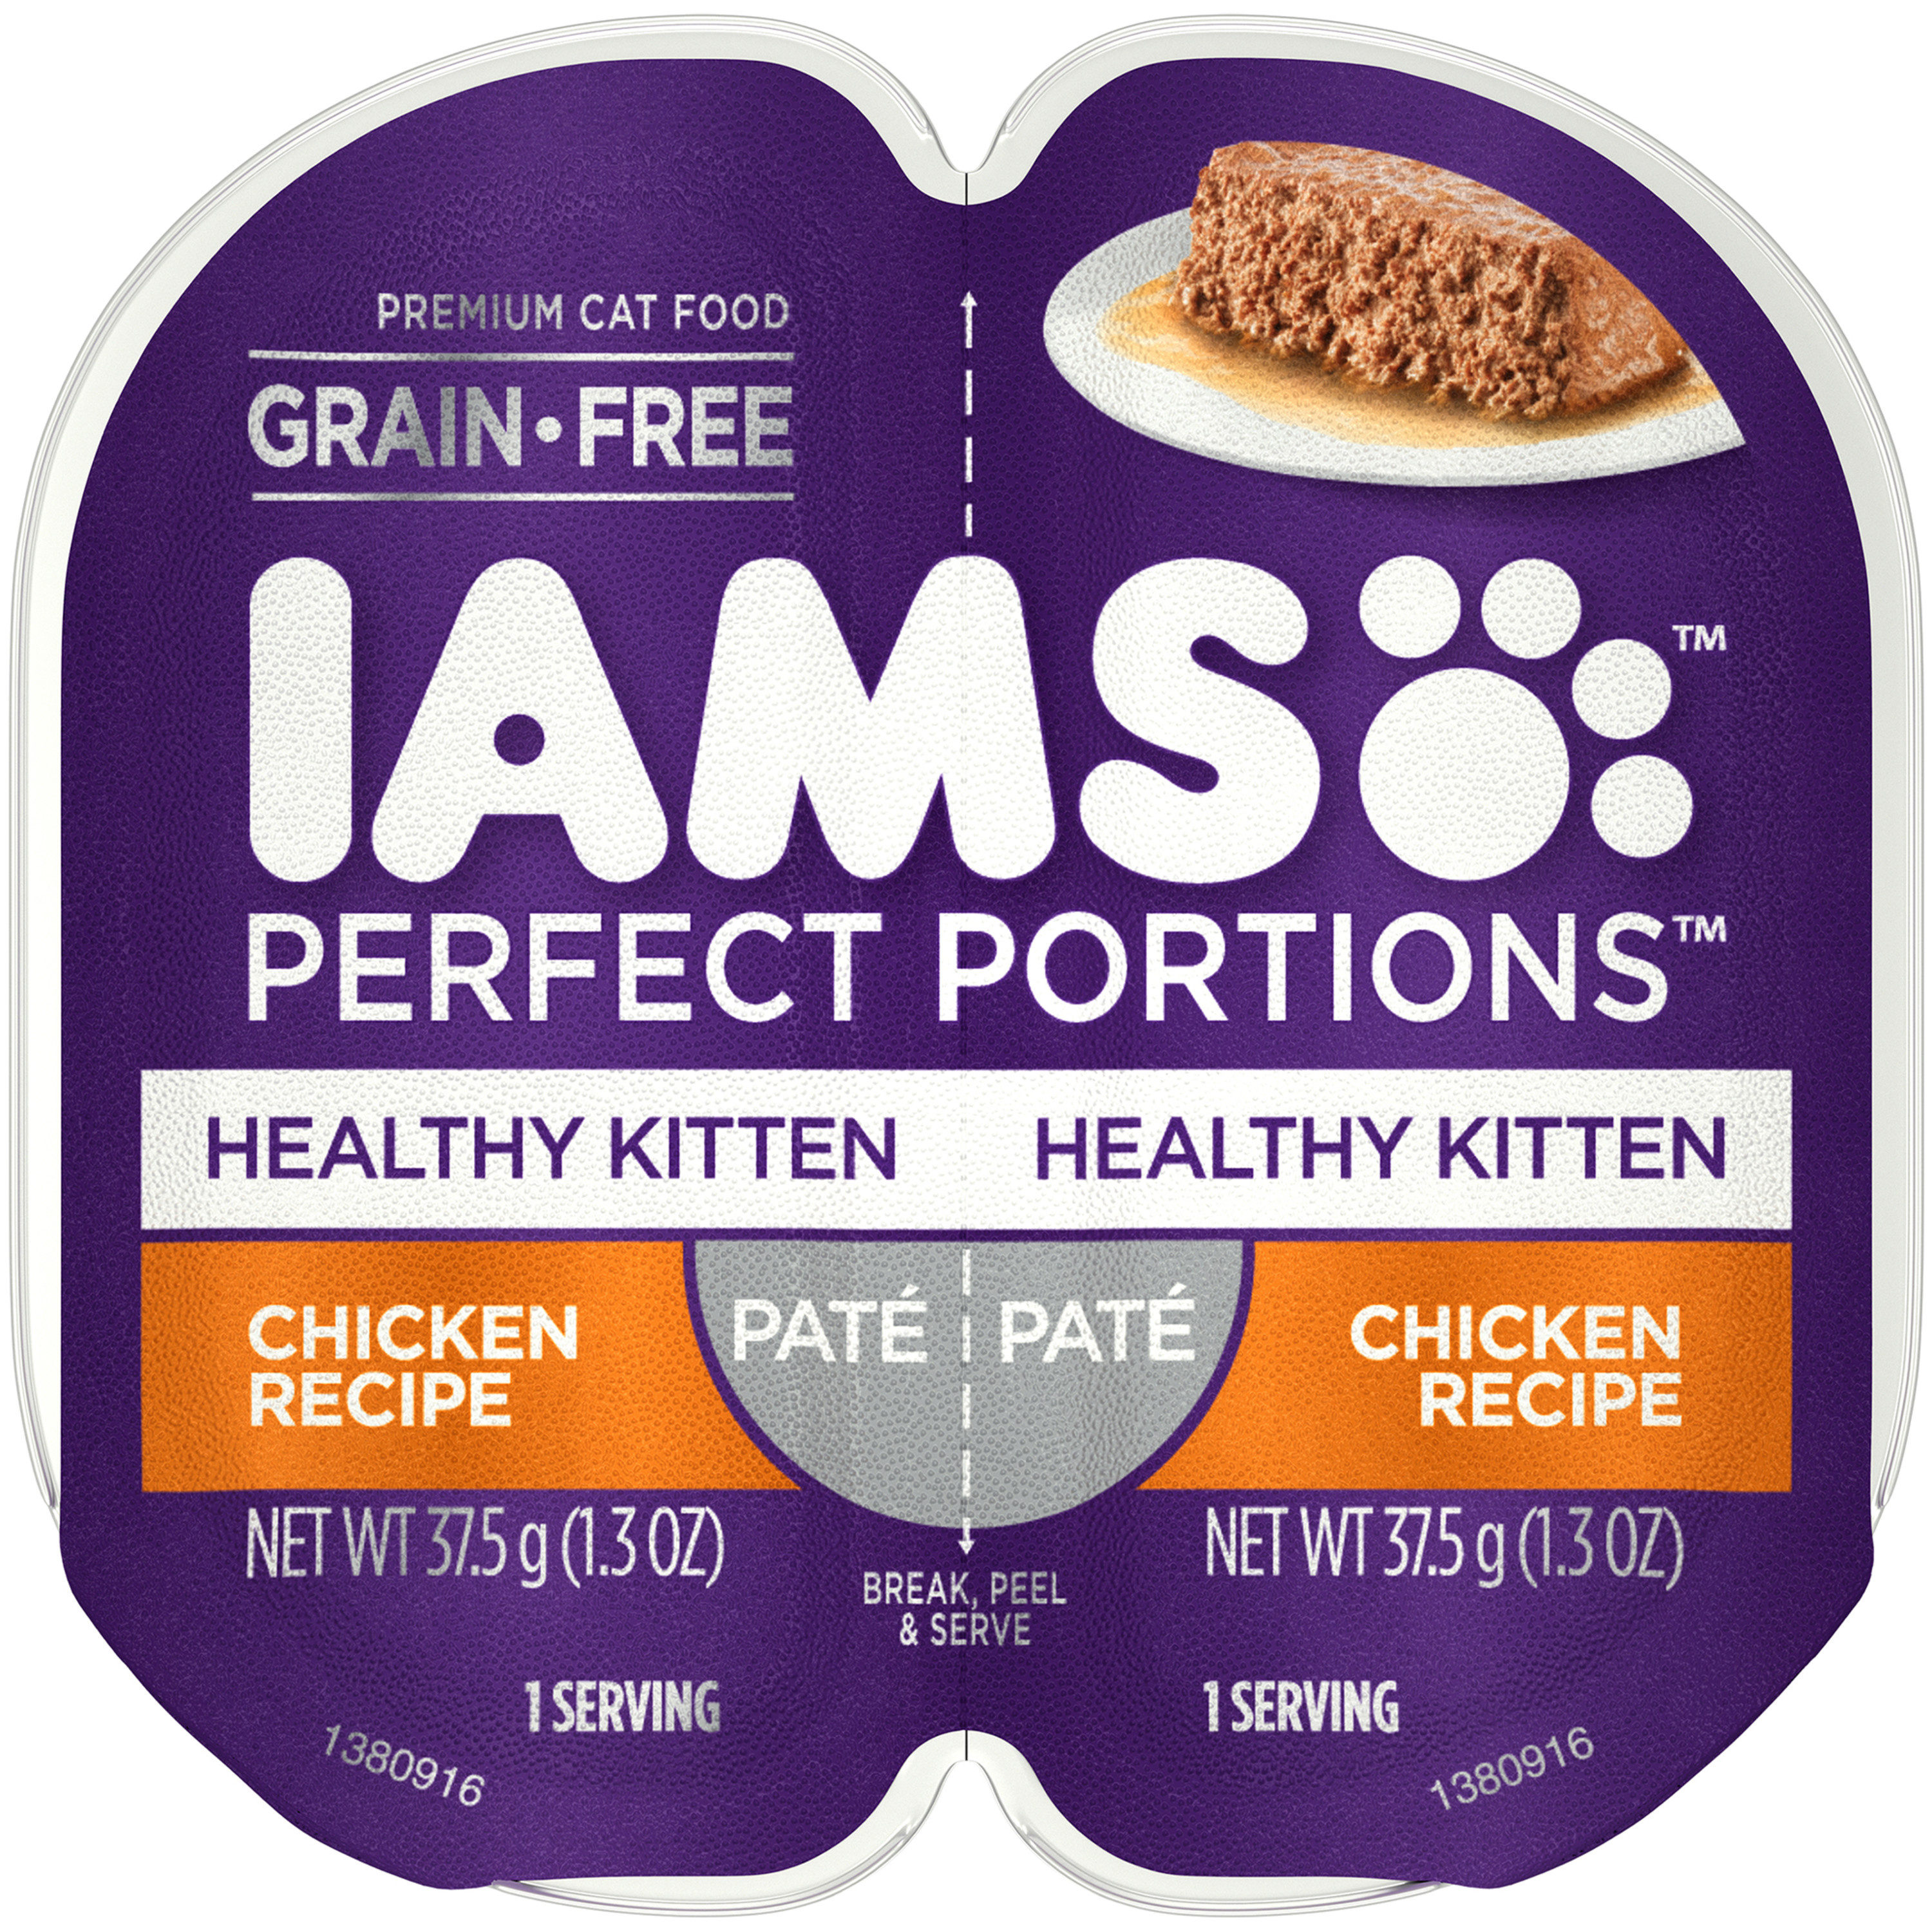 Iams Perfect Portions Healthy Kitten Chicken Recipe Pate Wet Cat Food, Tray, 2.6 Oz (2 Servings)